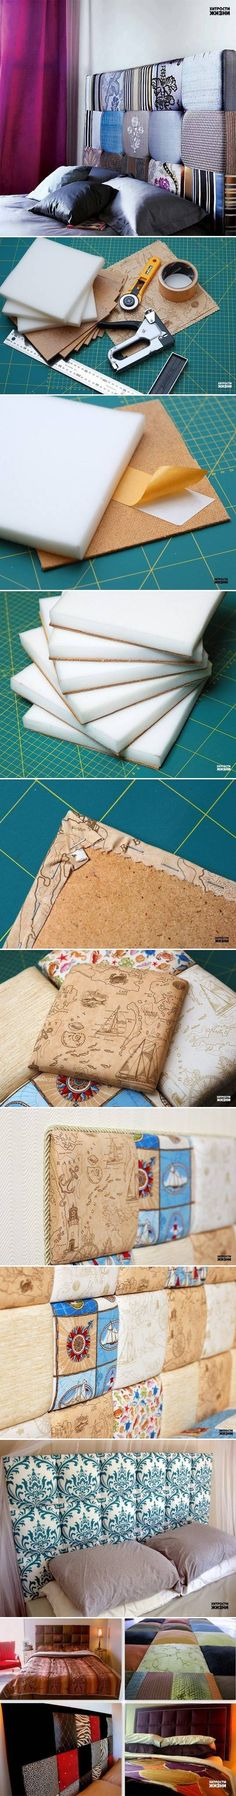 DIY Fabric Headboard   #DIY #PROJECTS #BED, #CRAFT, #IDEAS, #PROJECTS, #HANDMADE, #HEADBOARD